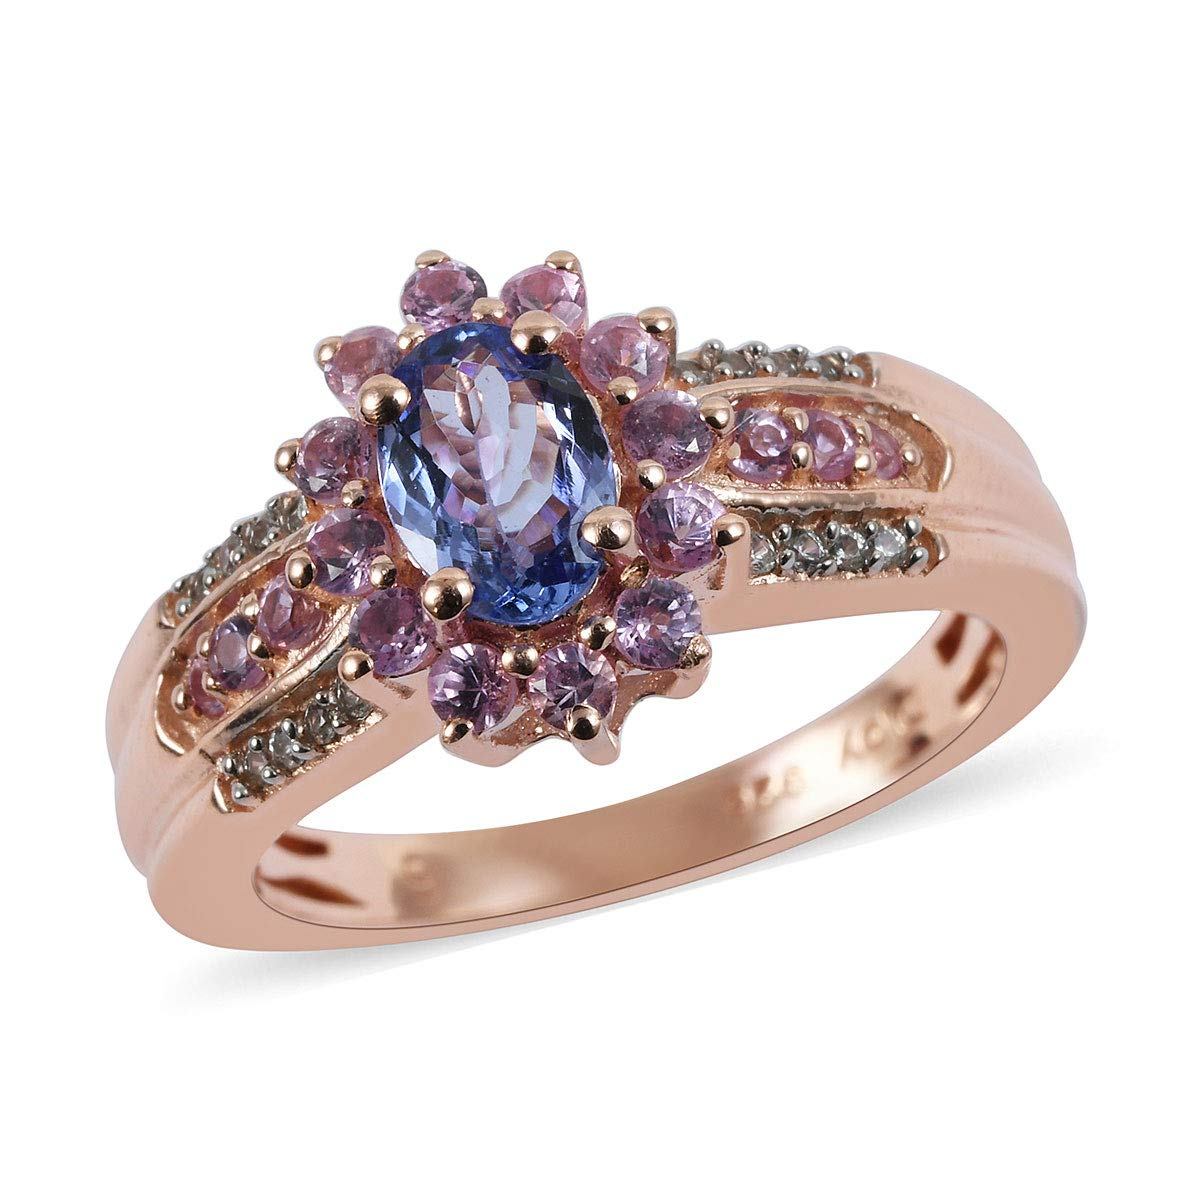 Stylish Unique Elegant 925 Sterling Silver AA Premium Blue Tanzanite Pink Sapphire Ring Vermeil Rose Gold Plated Women Gift Jewelry Size 6 Ct 1